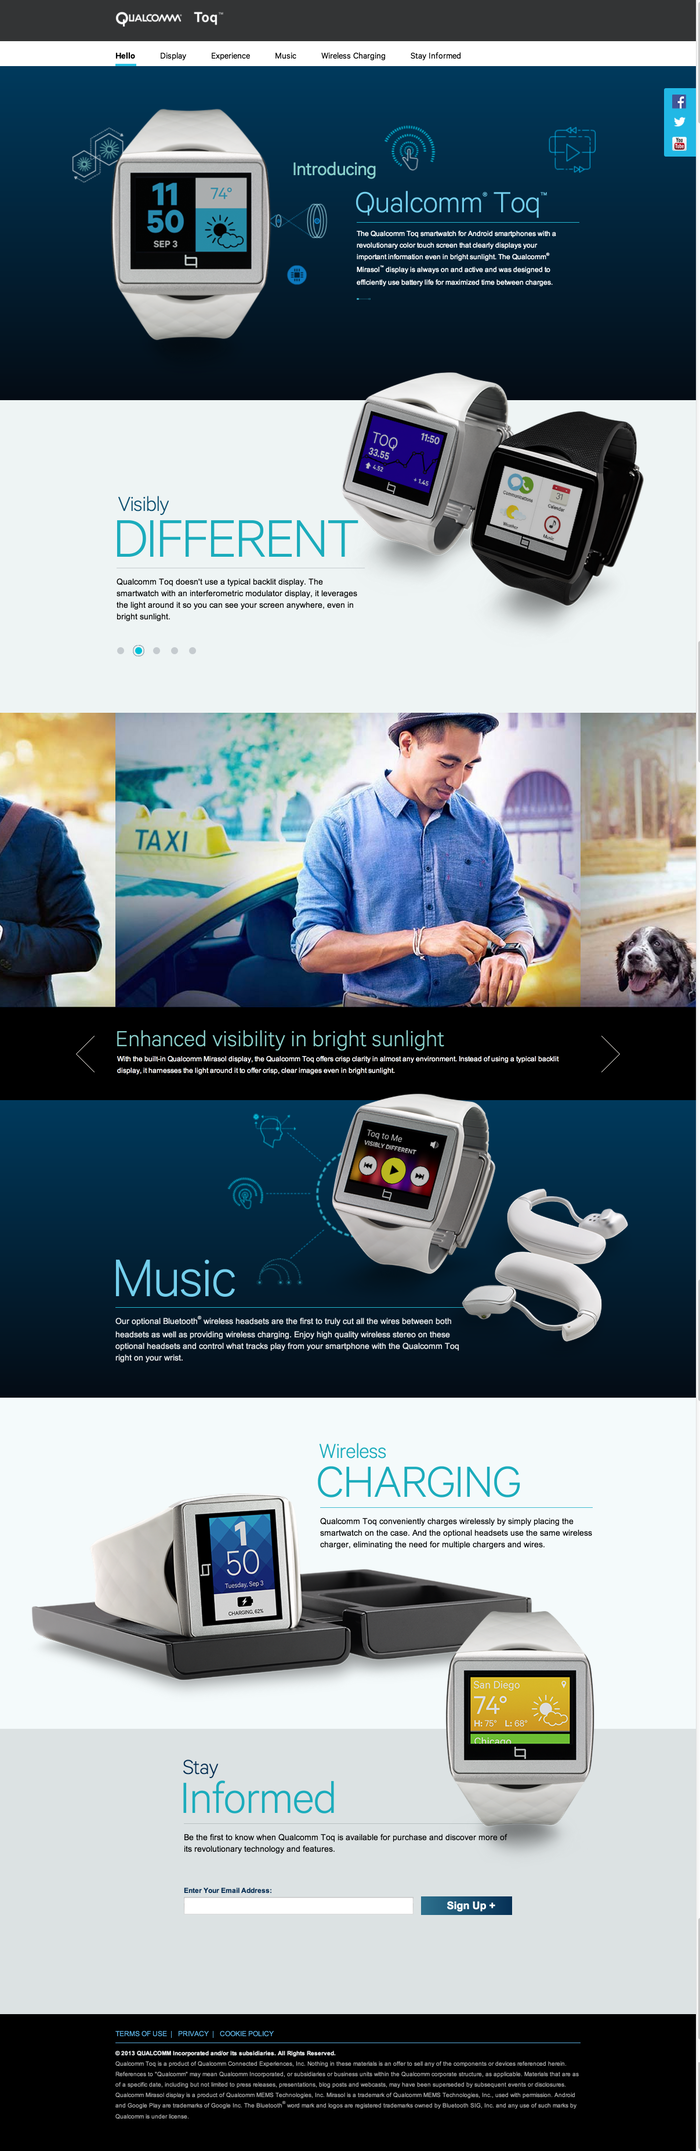 Qualcomm Toq Smartwatch 1